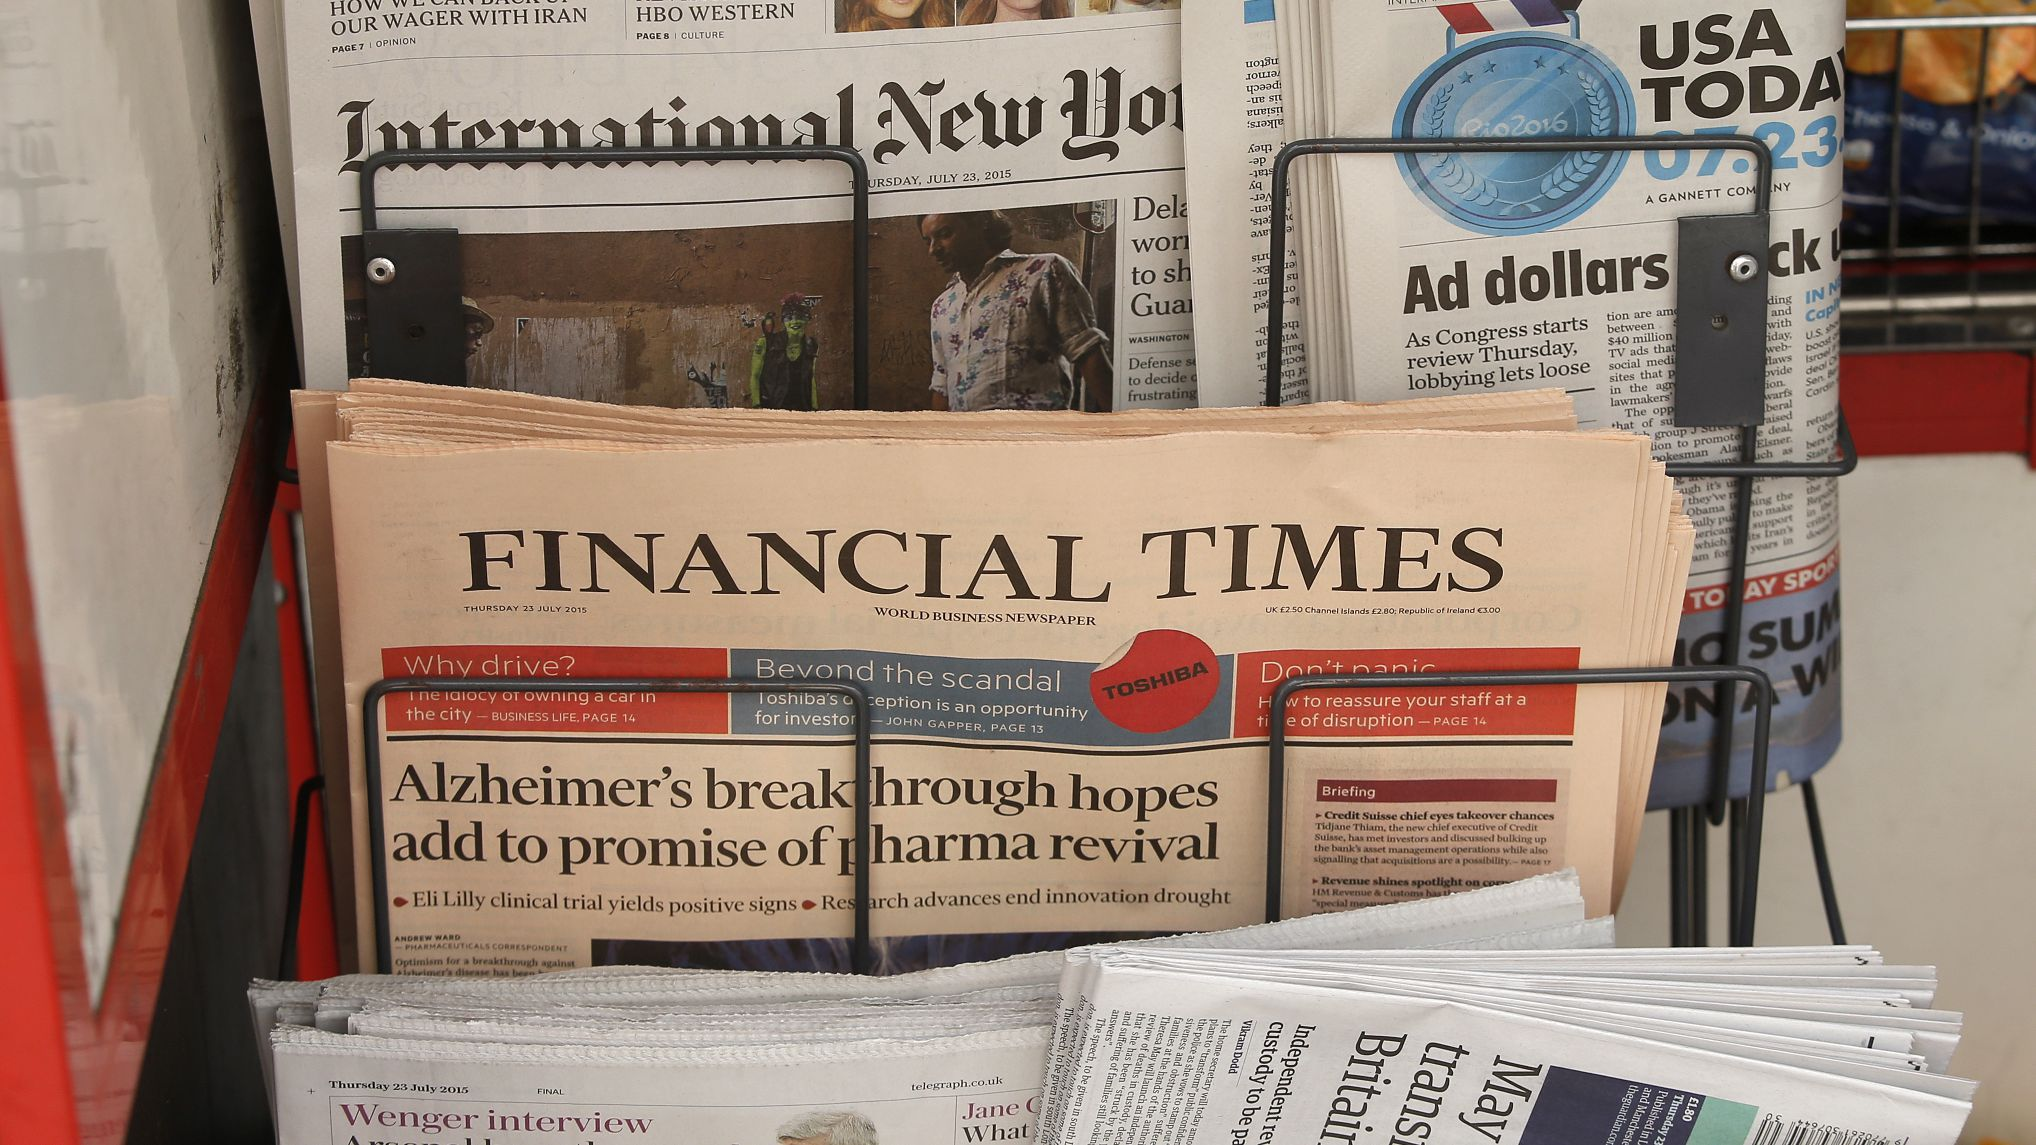 """Copies of the Financial Times newspaper sit in a rack at a newsstand in London, Britain July 23, 2015. British publisher Pearson has decided to sell the Financial Times to a """"global, digital news company"""" after owning the business newspaper for nearly 60 years, a person familiar with the deal said on Thursday. Pearson, which has become the world's leading education provider, later confirmed that it was in advanced discussions regarding a potential disposal of FT group, which includes the pink-paged paper, its website and its share in the Economist, but declined to provide further details. REUTERS/Peter Nicholls"""